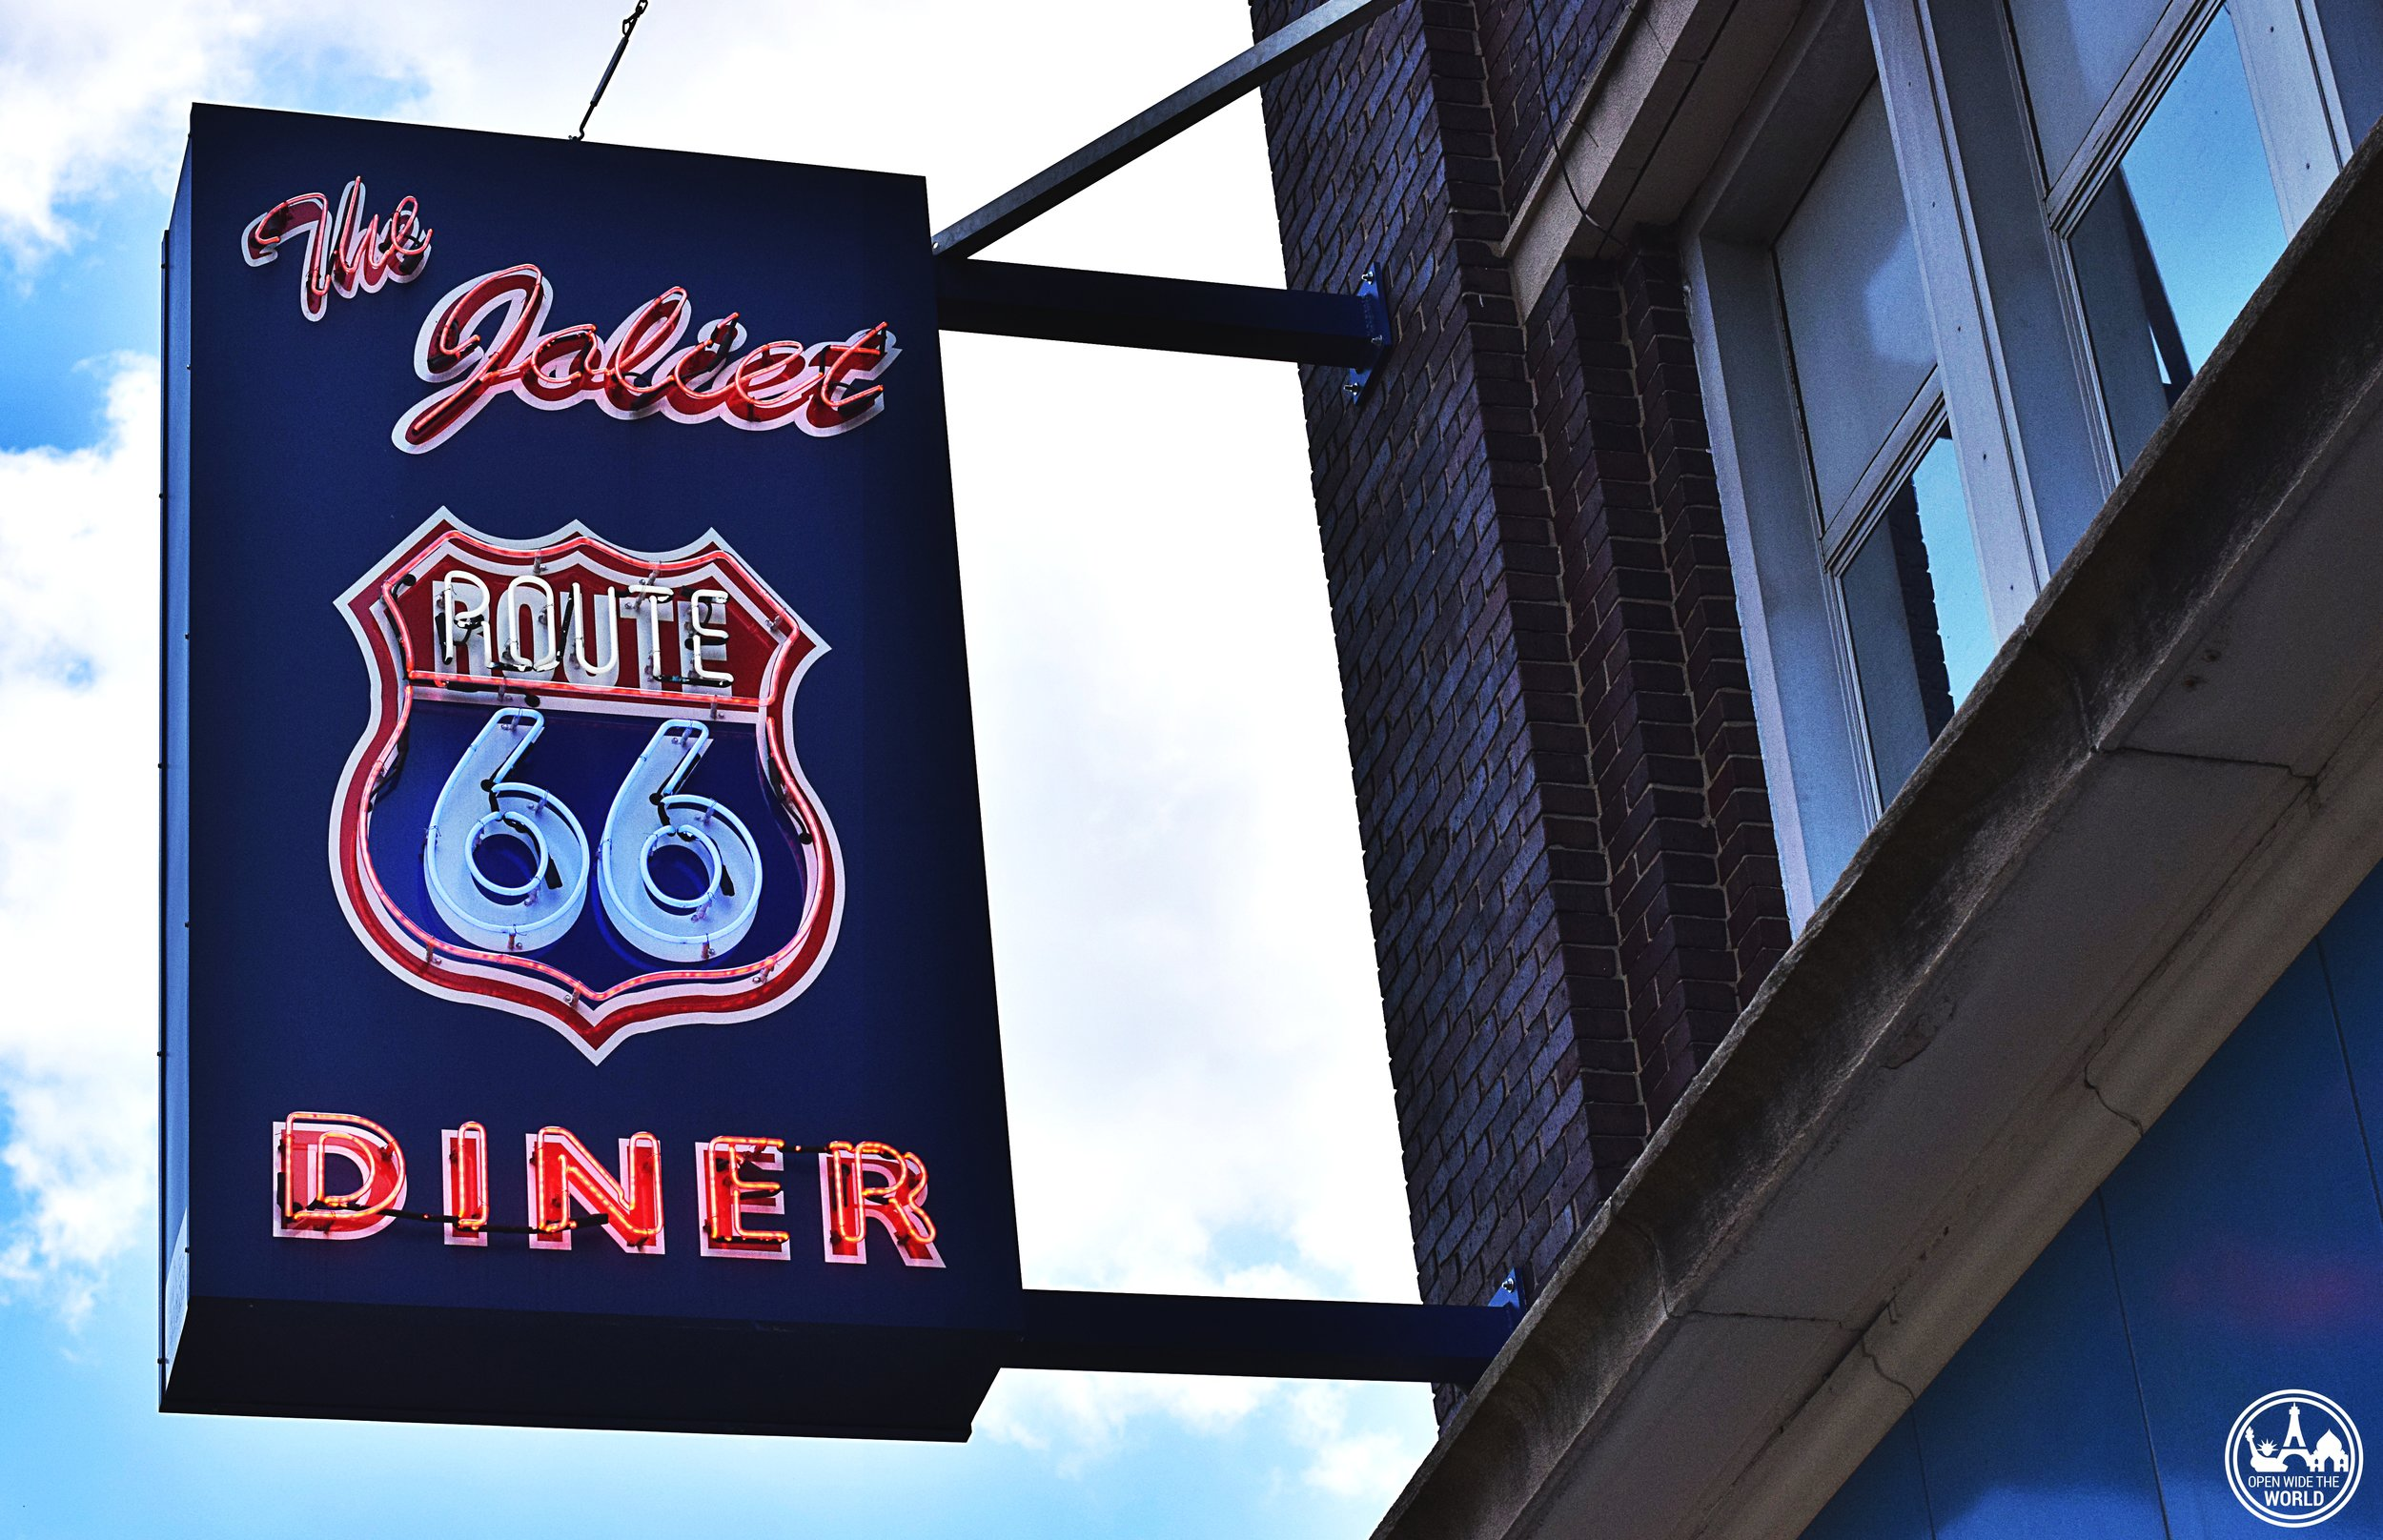 Featuring photo props, food stops, and educational opps, Joliet is a great first stop heading west on Route 66! #route66 #openwidetheworld